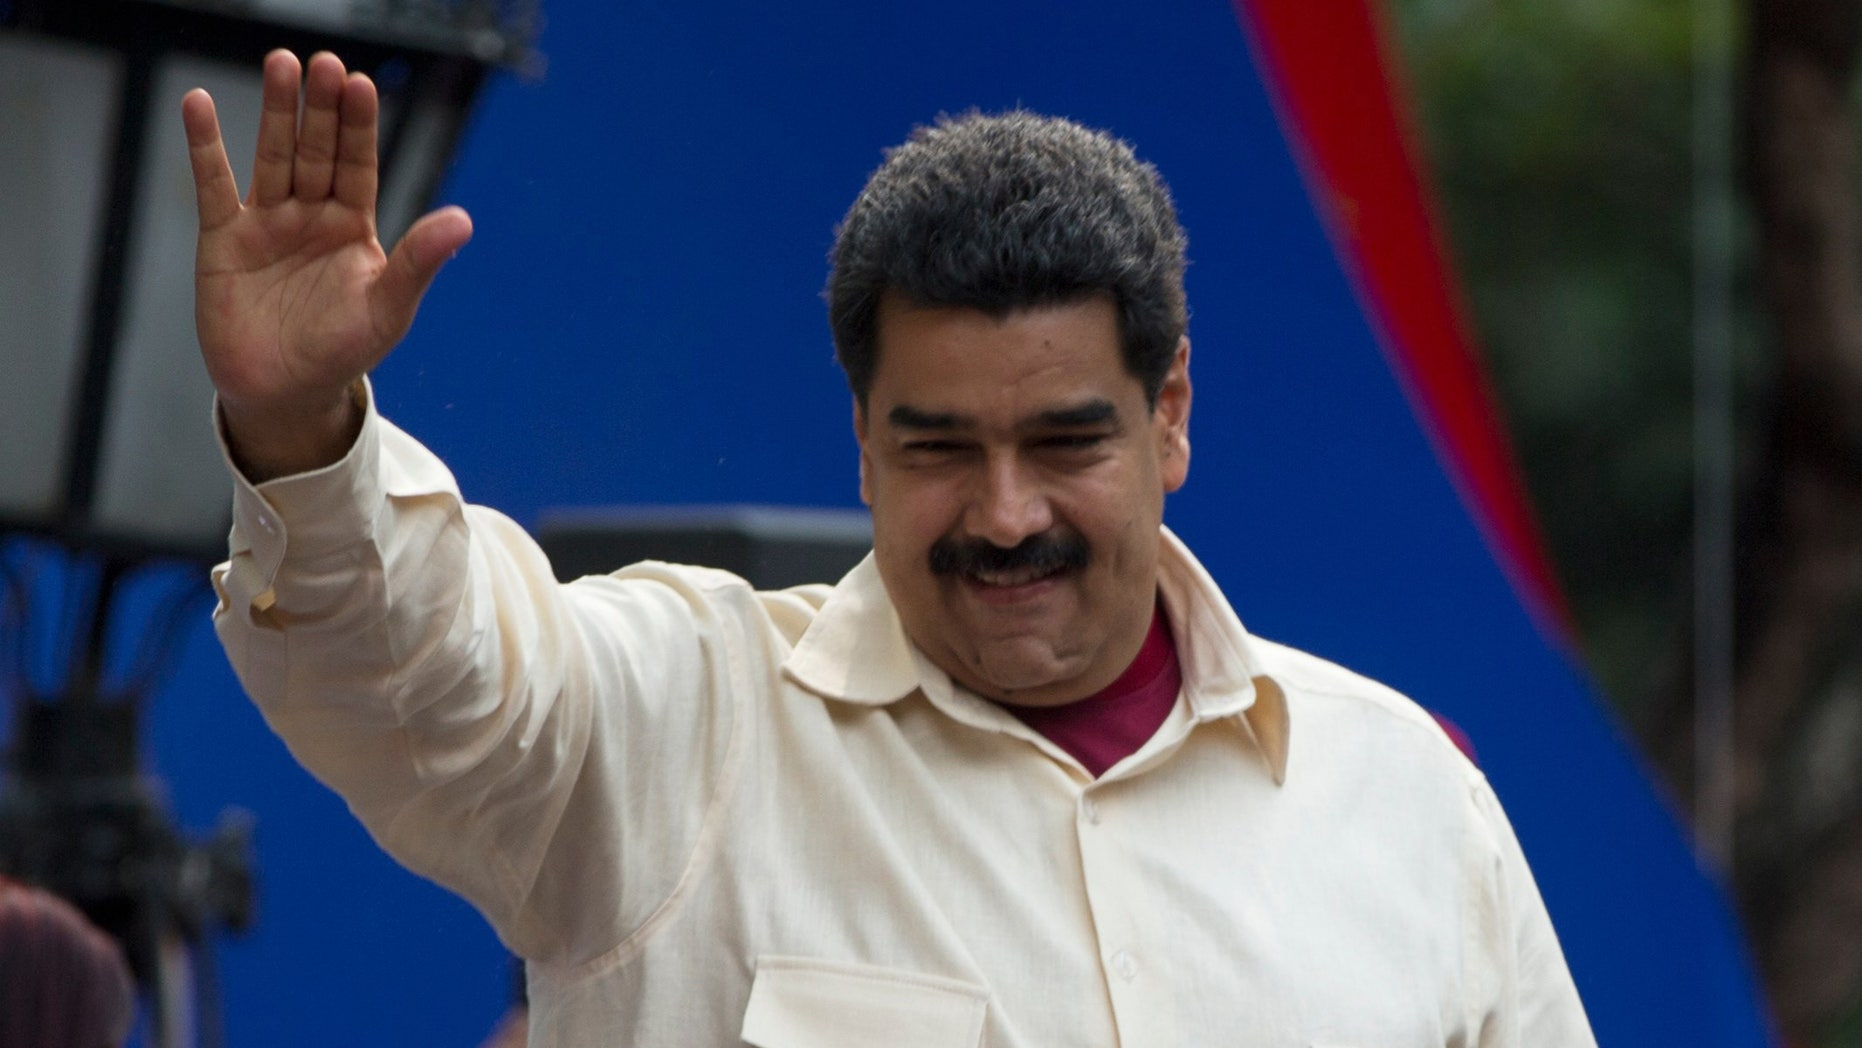 File-This April 19, 2016, file photo shows Venezuelaâs President Nicolas Maduro greeting supporters upon his arrival to Bolivar Square to celebrate the 206th anniversary of the call for independence from Spain, in Caracas, Venezuela.  The president is ordering a 30 percent increase in the minimum wage, the latest move by the socialist government to grapple with high inflation and economic stagnation. The boost announced Saturday, April 30, 2016, by Maduro comes after a 25 percent increase on March 1. (AP Photo/Fernando Llano, File)